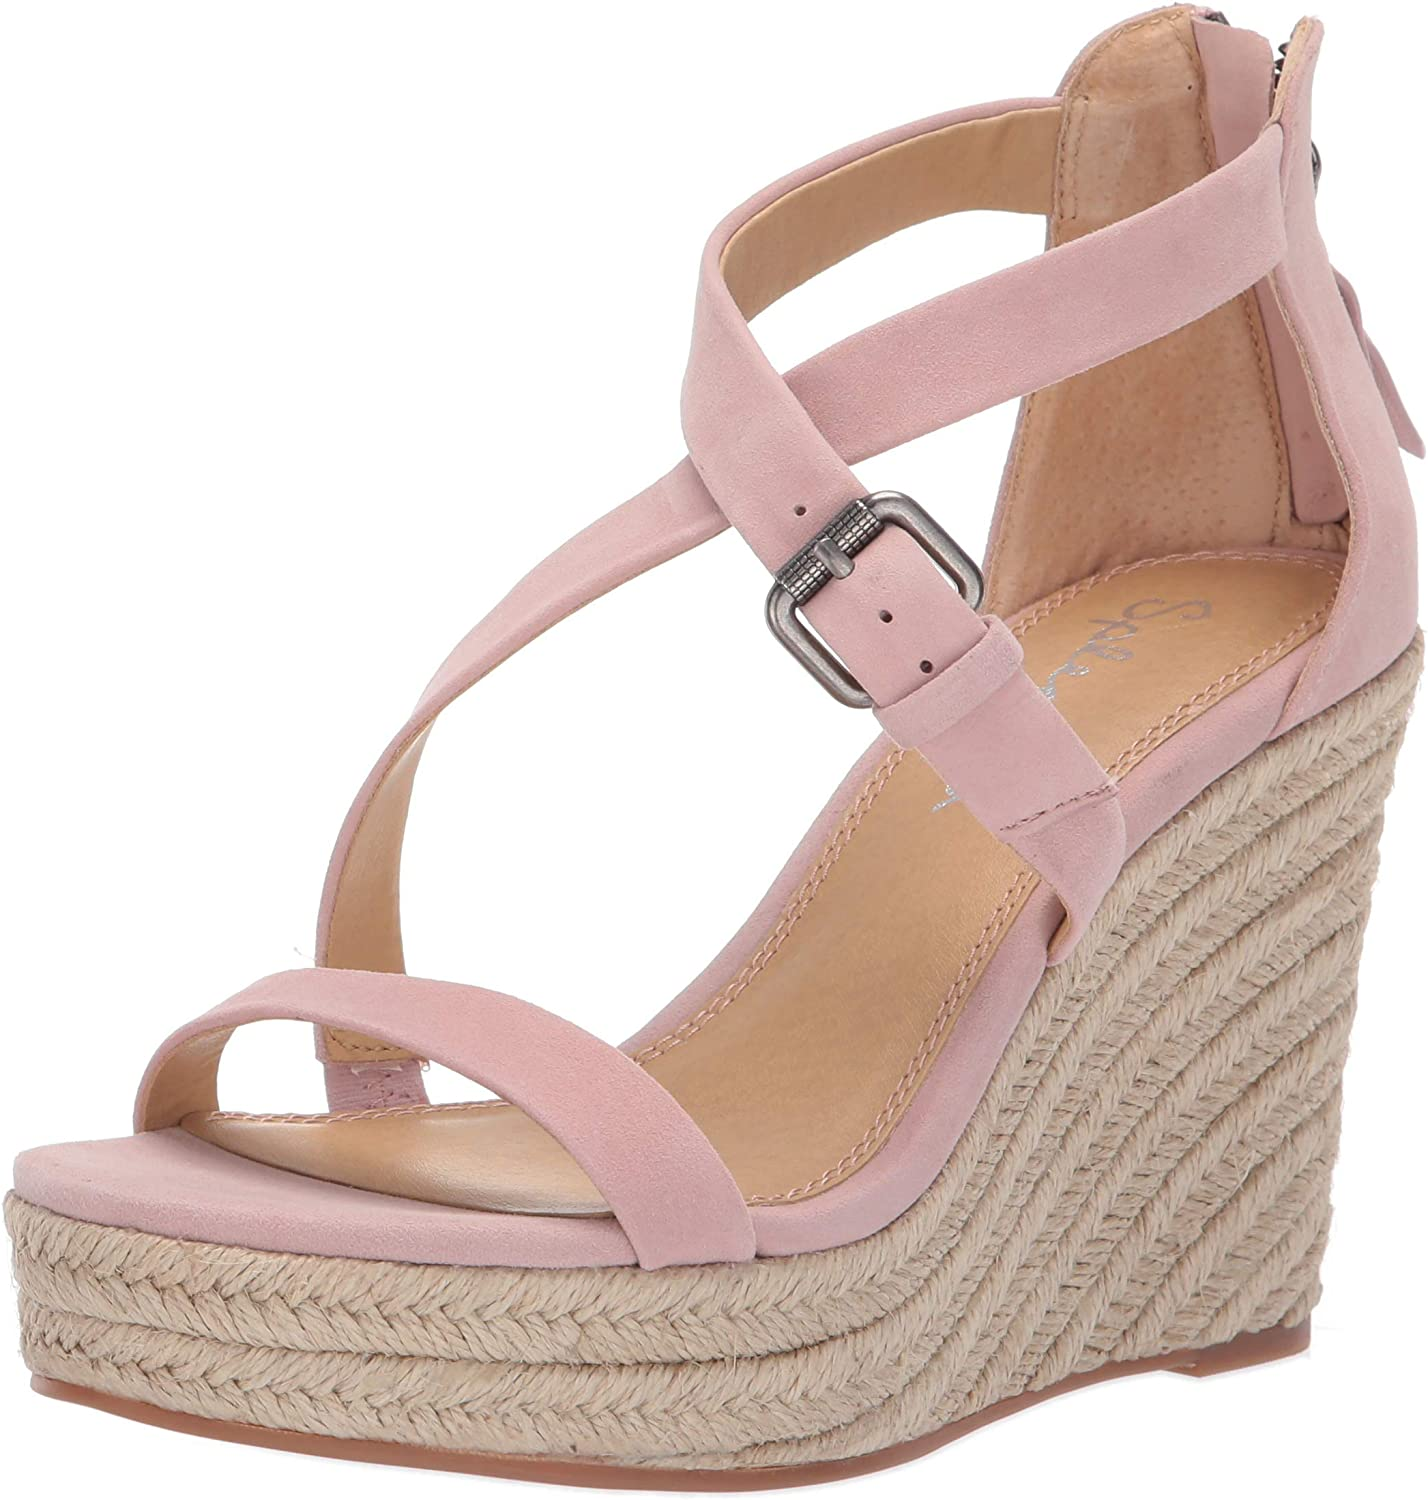 Splendid Womens Stormi Wedge Sandal